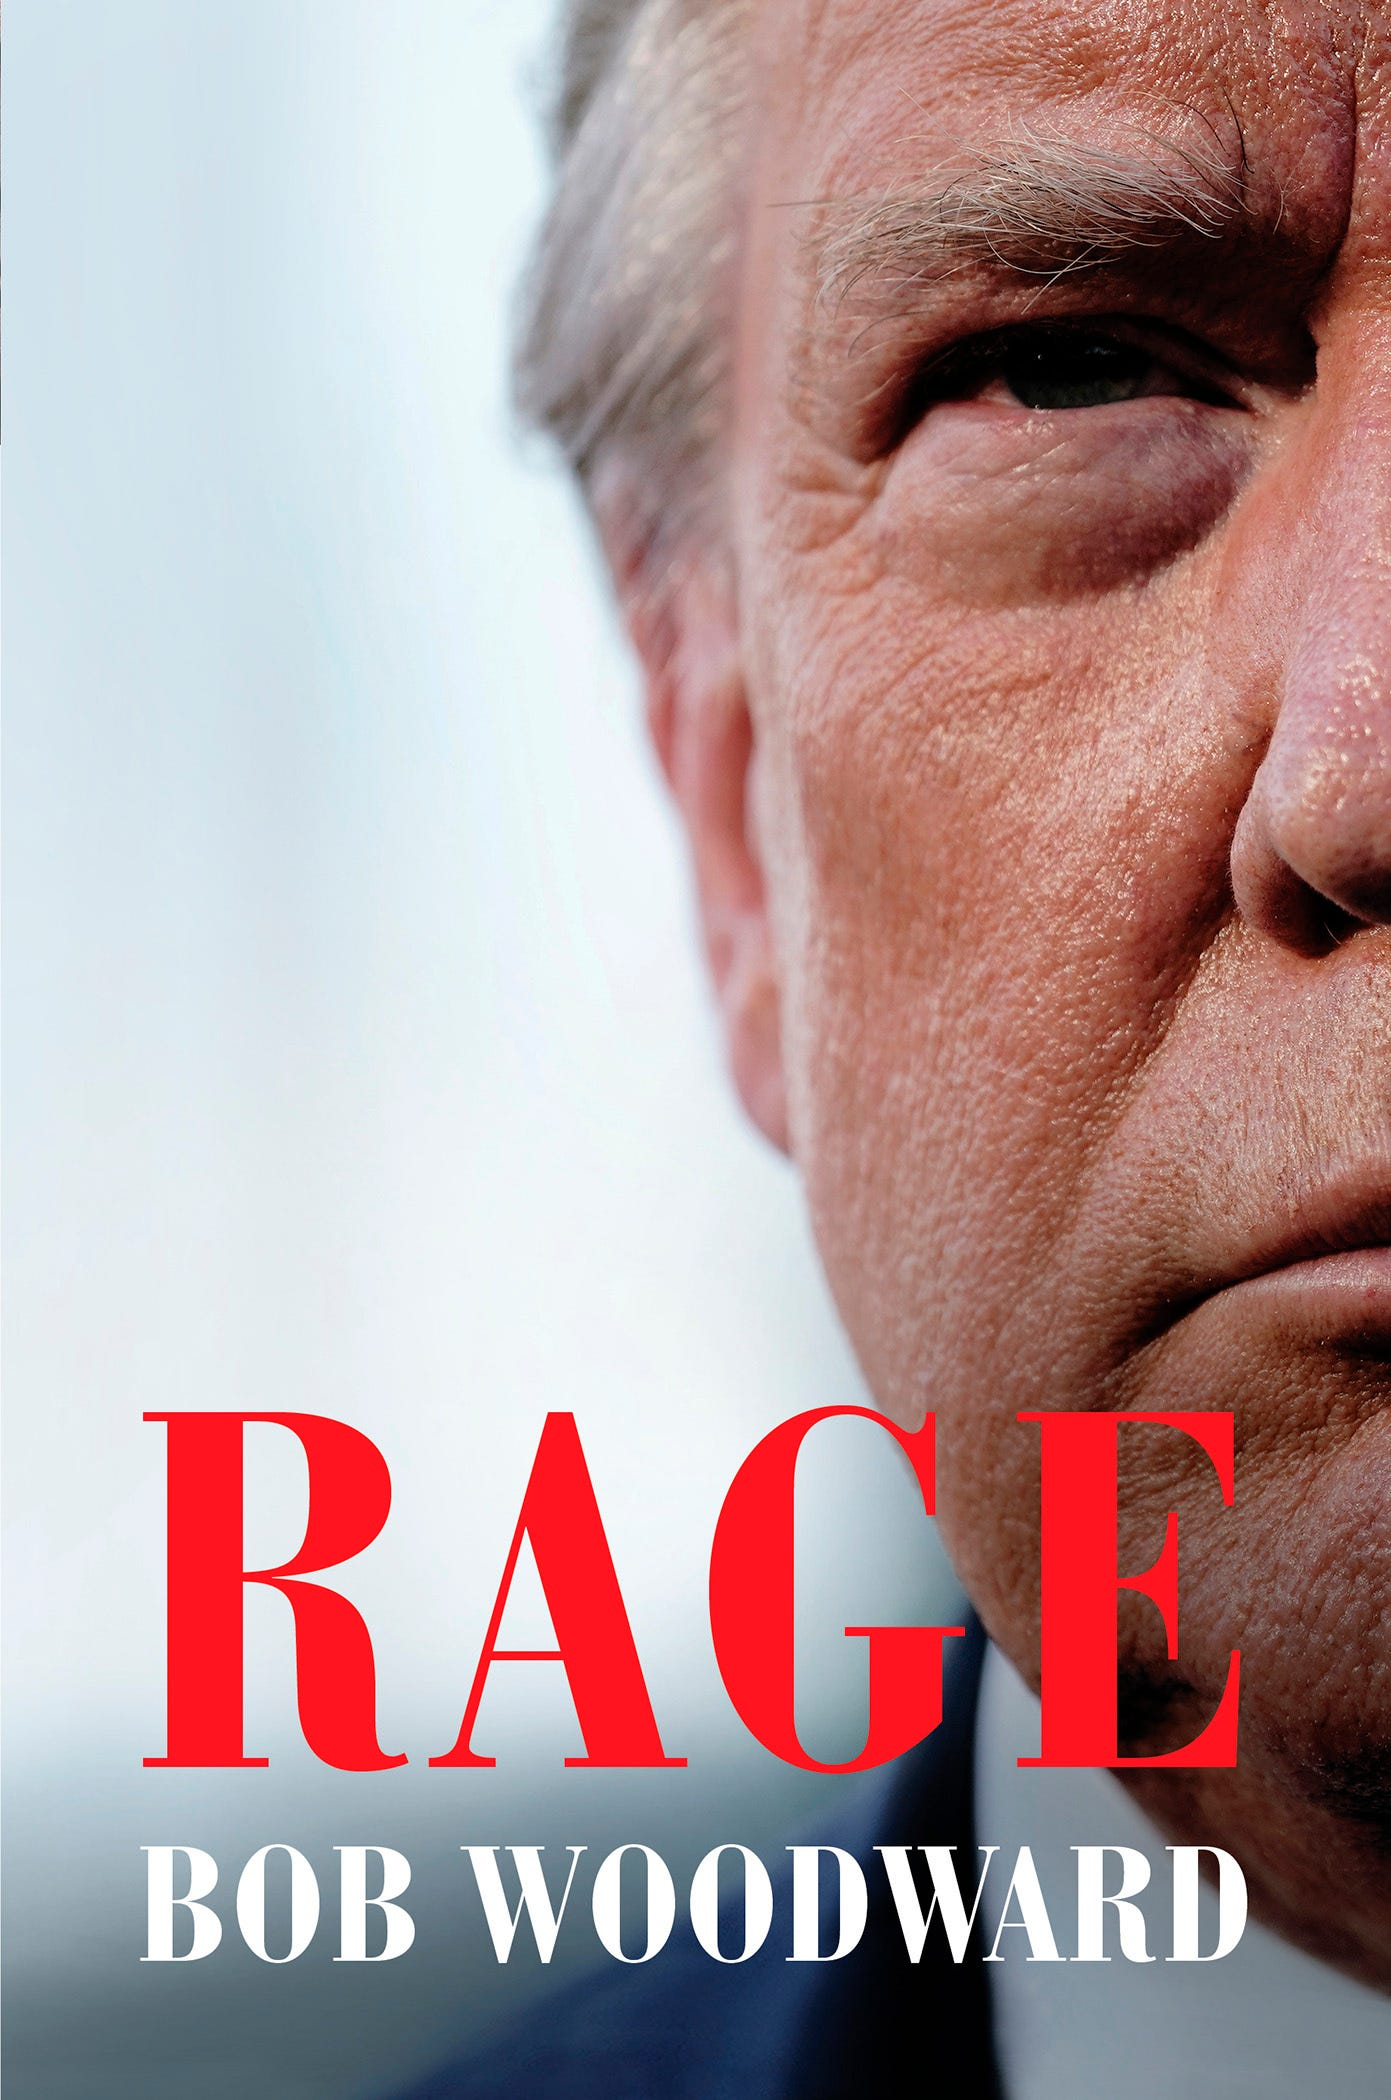 Dynamite behind every door : More of Trump s comments on Obama, race and world leaders from Bob Woodward s book